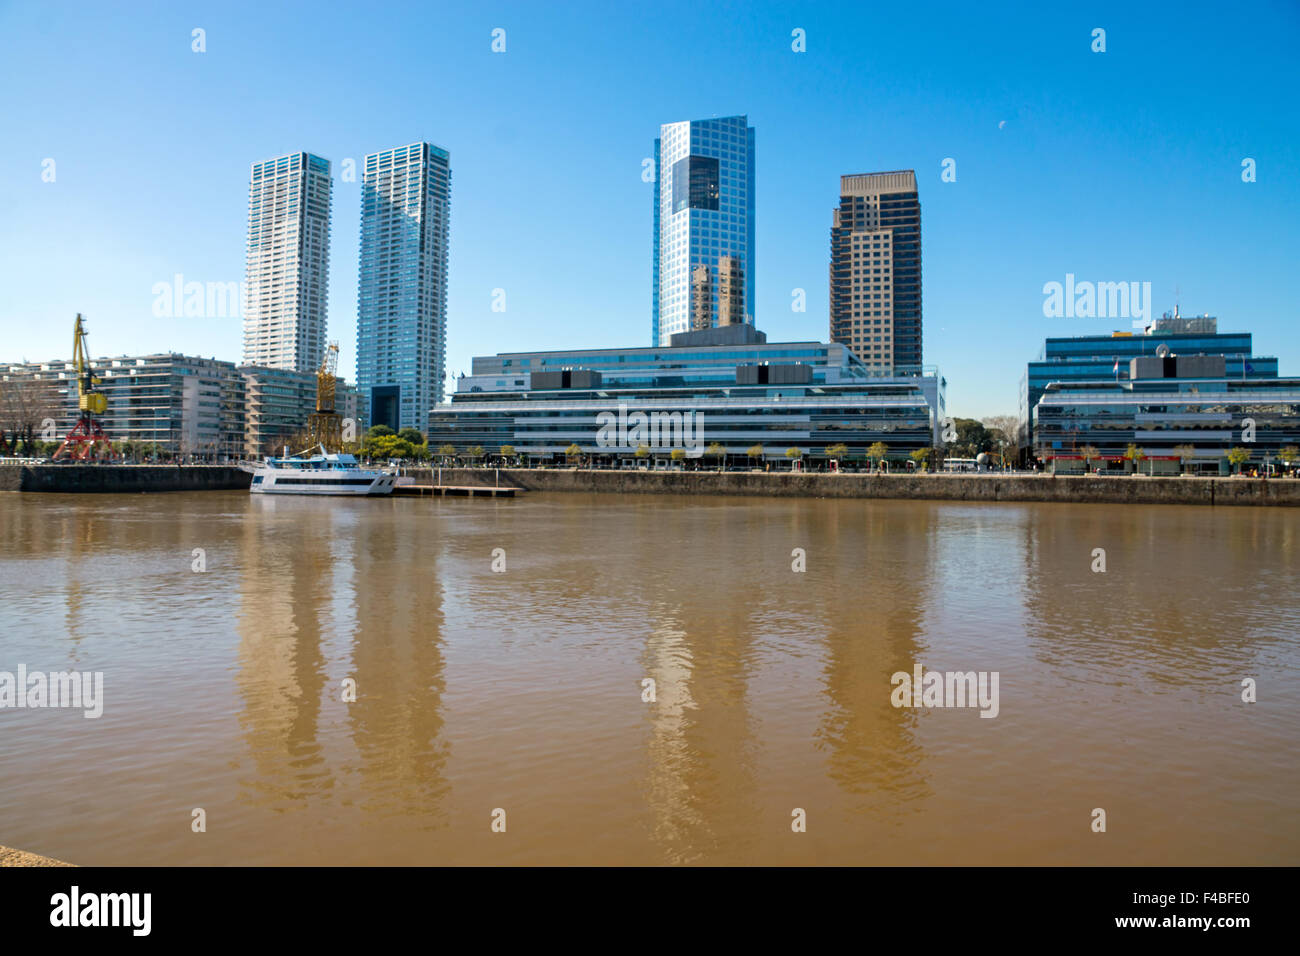 Part of Puerto Madero - Stock Image